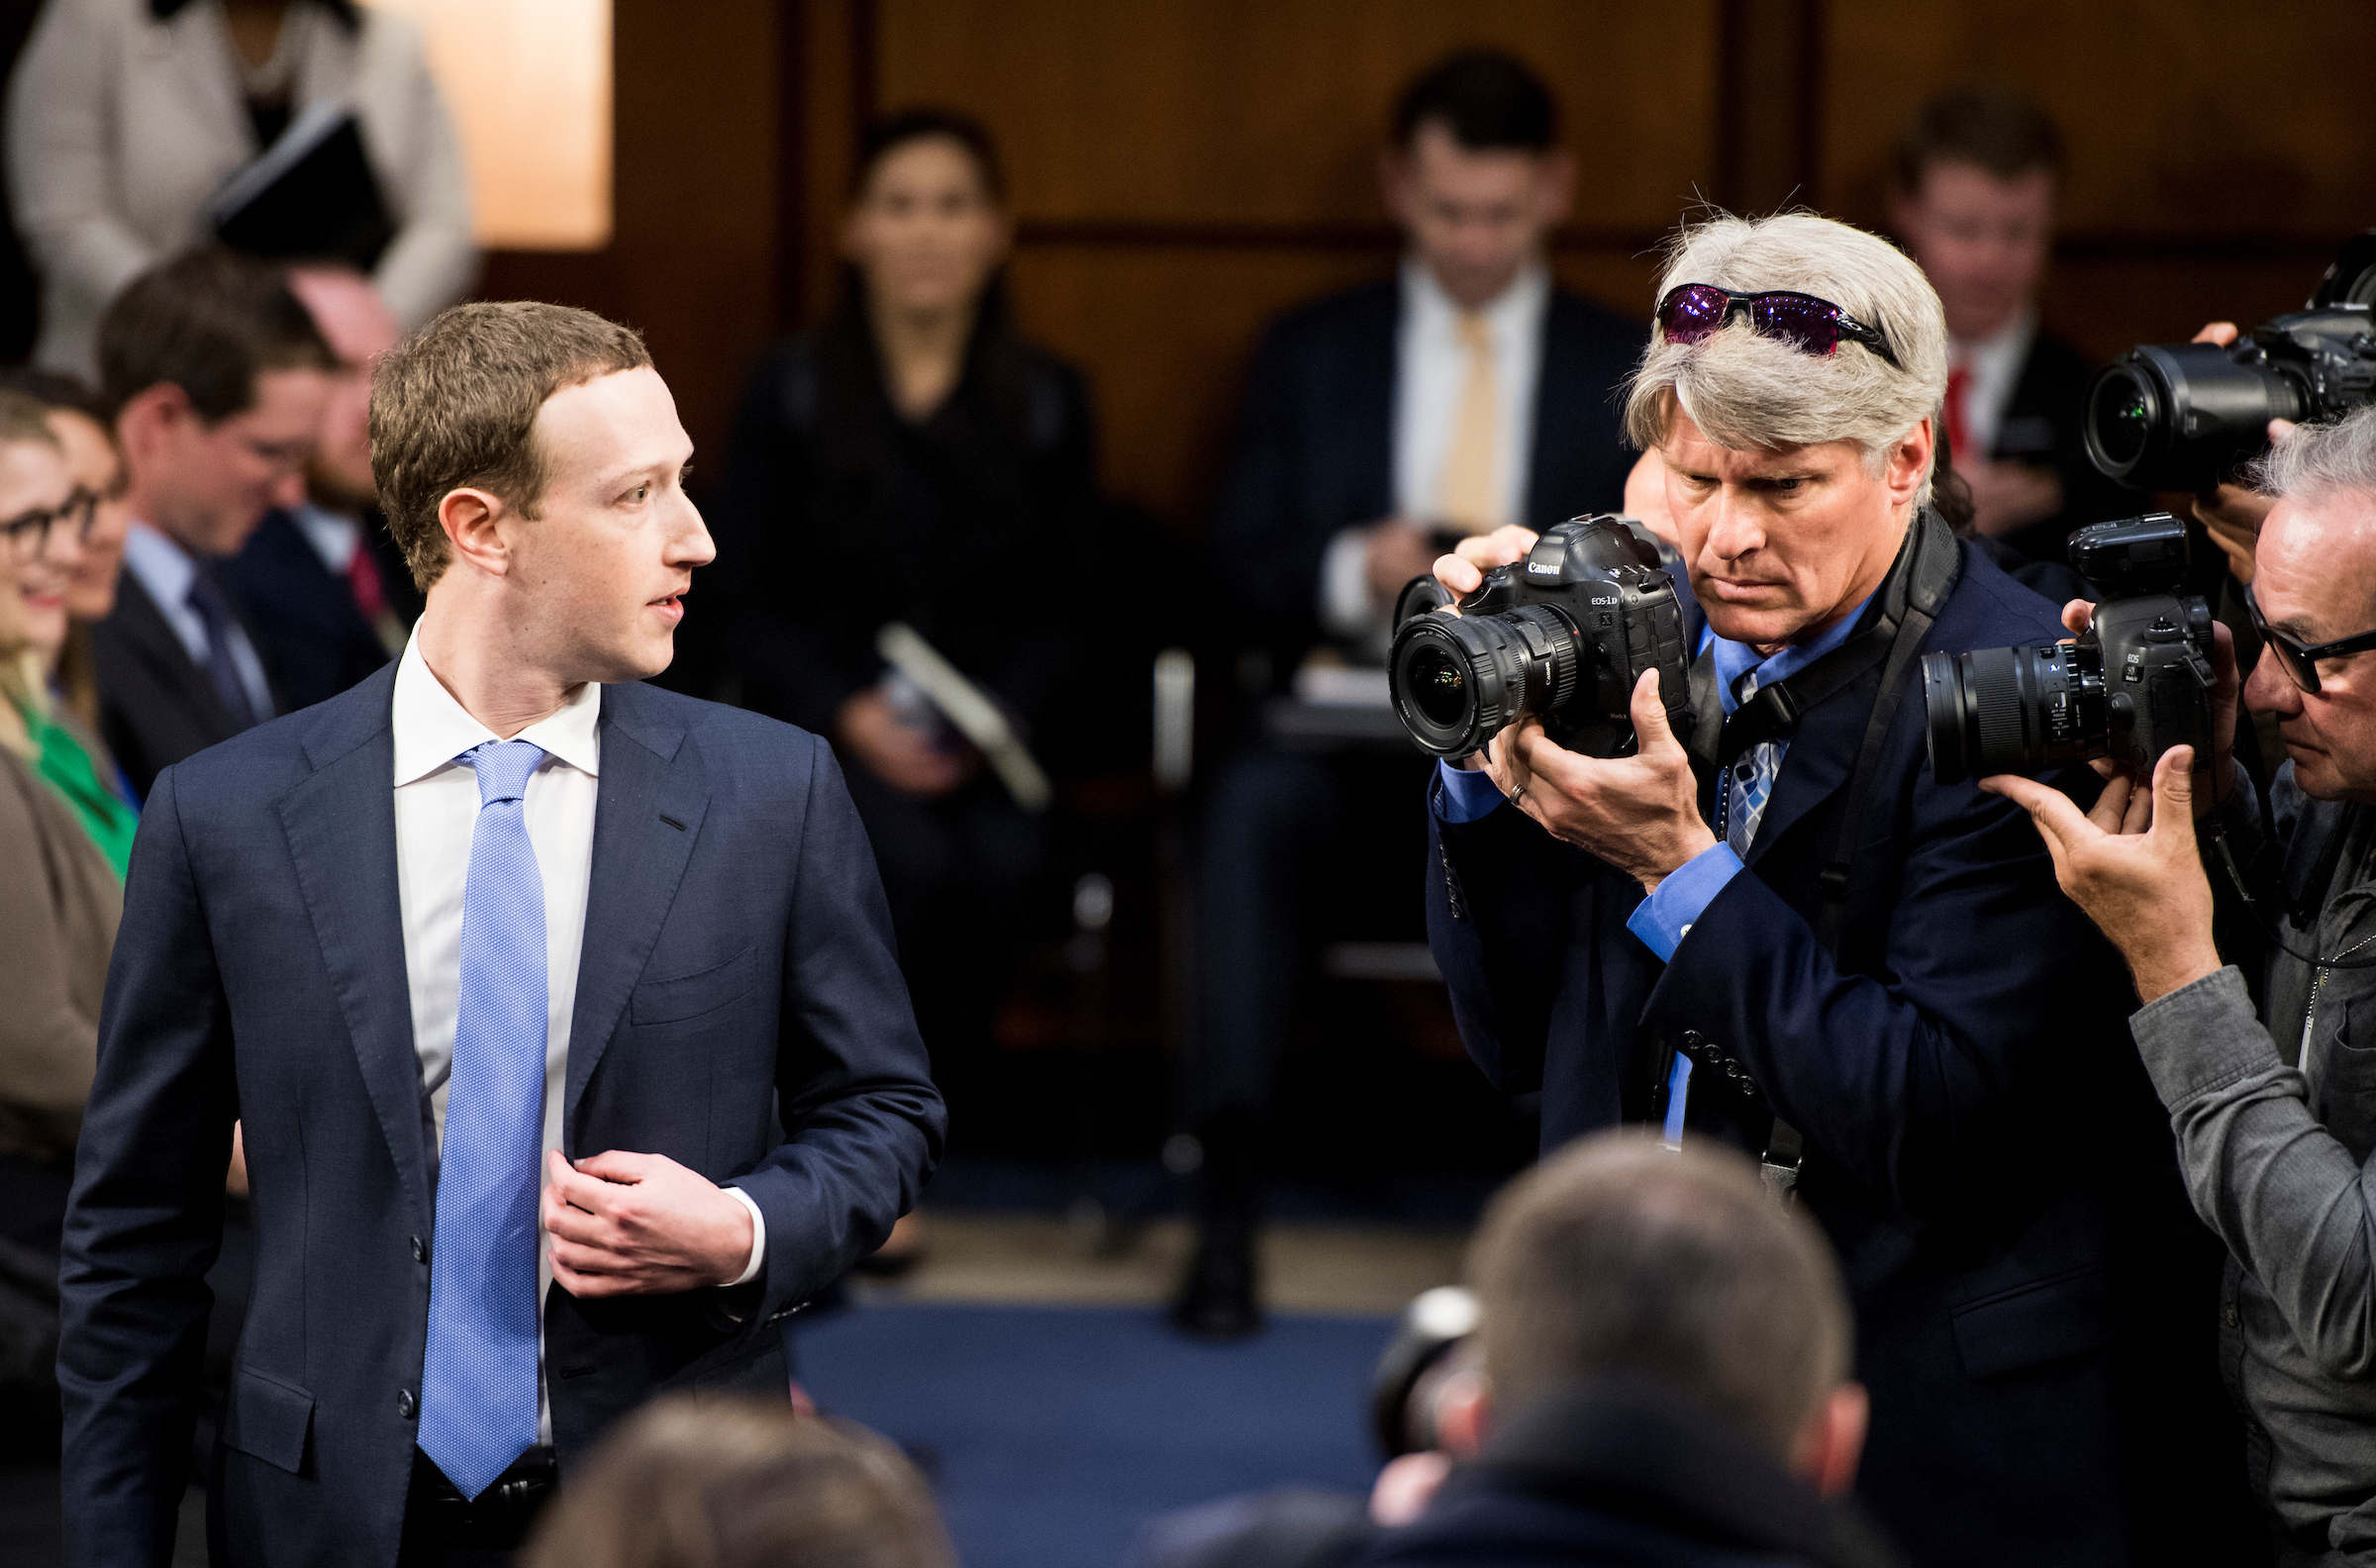 Mark Zuckerberg arrives for Senate questioning. (Bill Clark/CQ Roll Call)